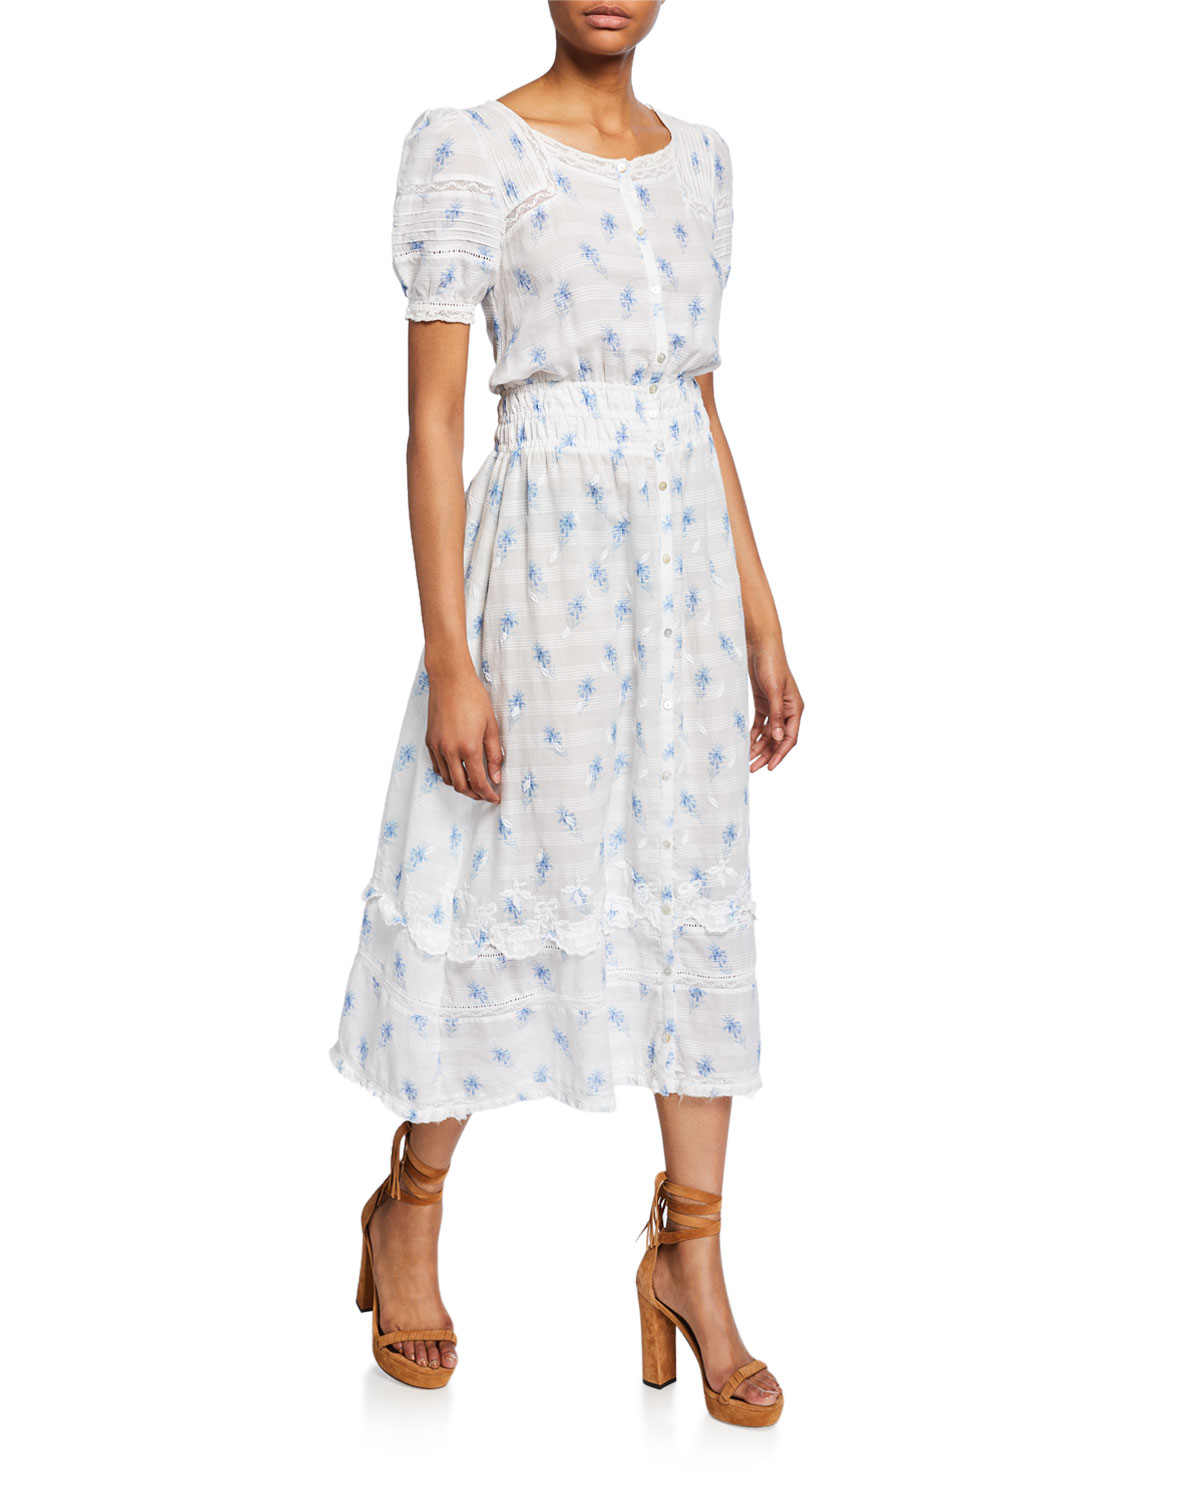 Loveshackfancy Dresses SANDY EMBROIDERED BUTTON-FRONT MIDI DRESS